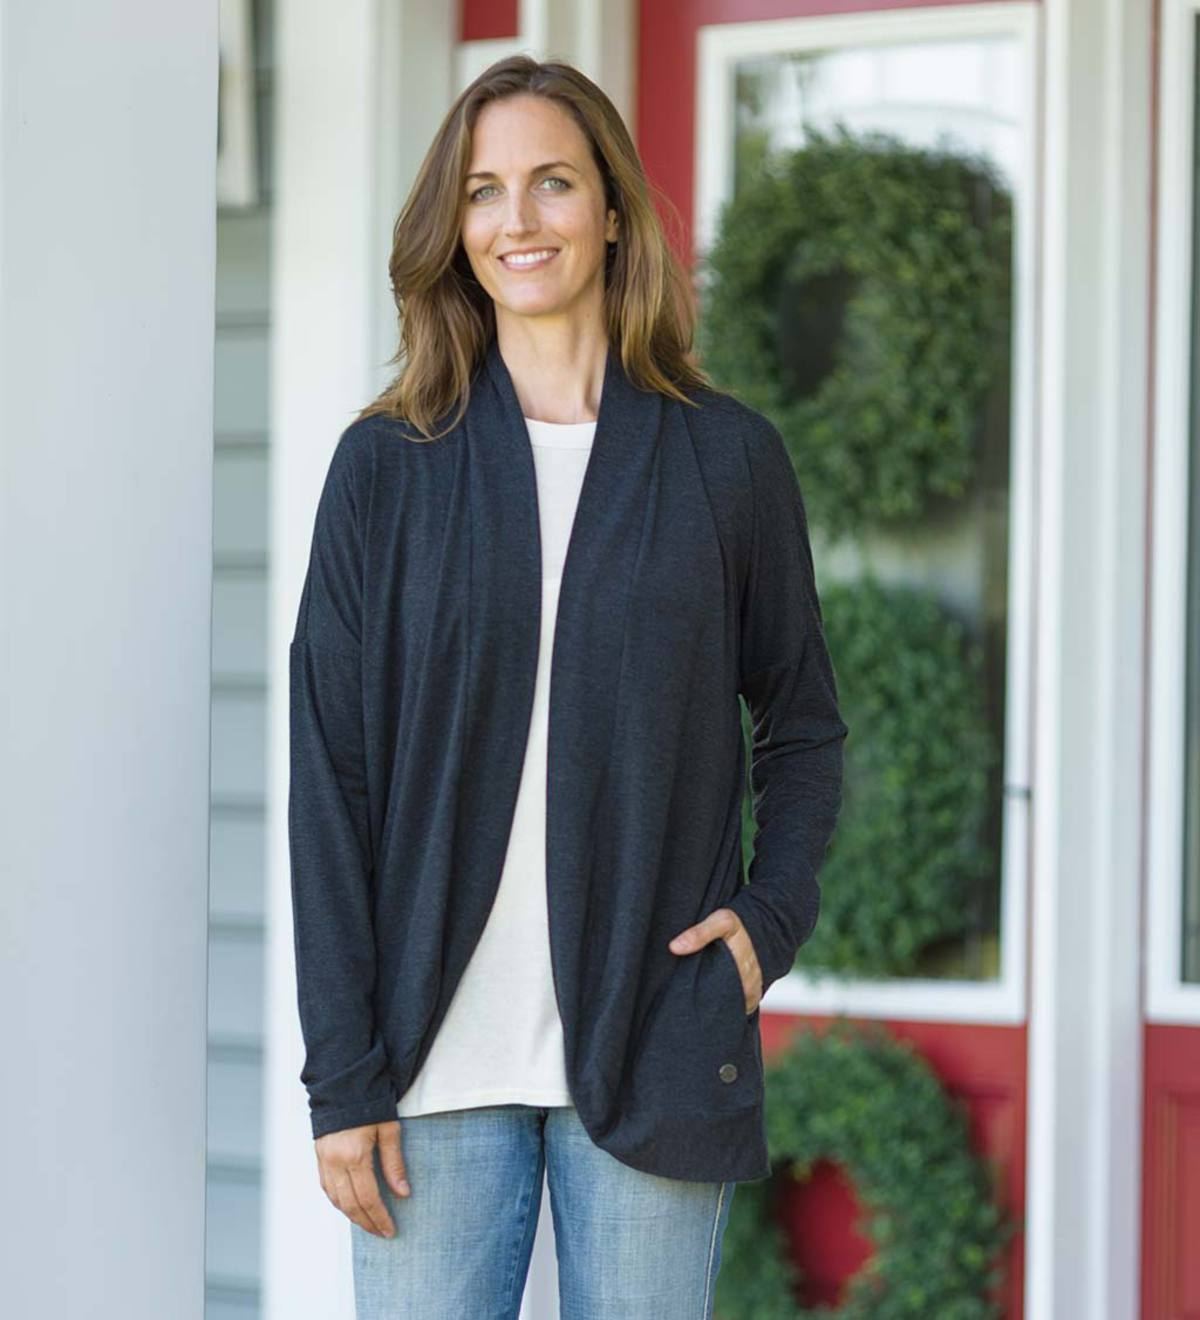 Life Is Good Women's Fly Away Cardigan - Black - L(12-14)